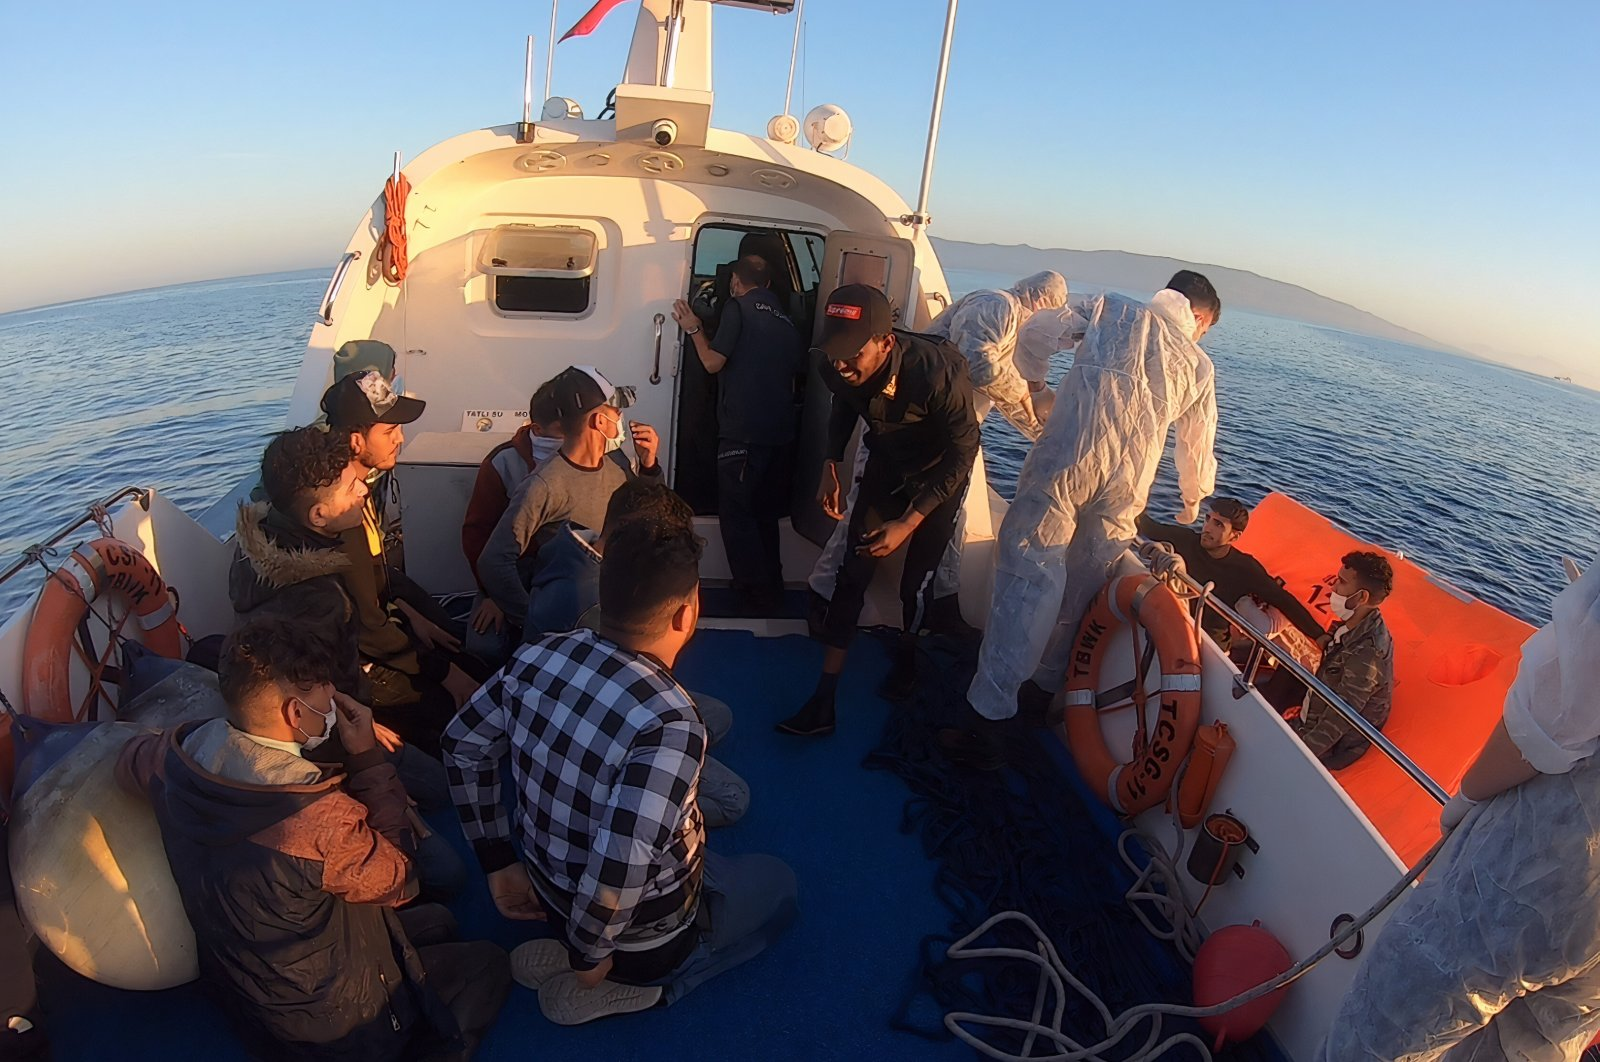 Some 25 irregular migrants pushed back by Greece were rescued by the Turkish coast guard near the coast of Muğla province's Datça district, Turkey, May 20, 2021. (DHA Photo)